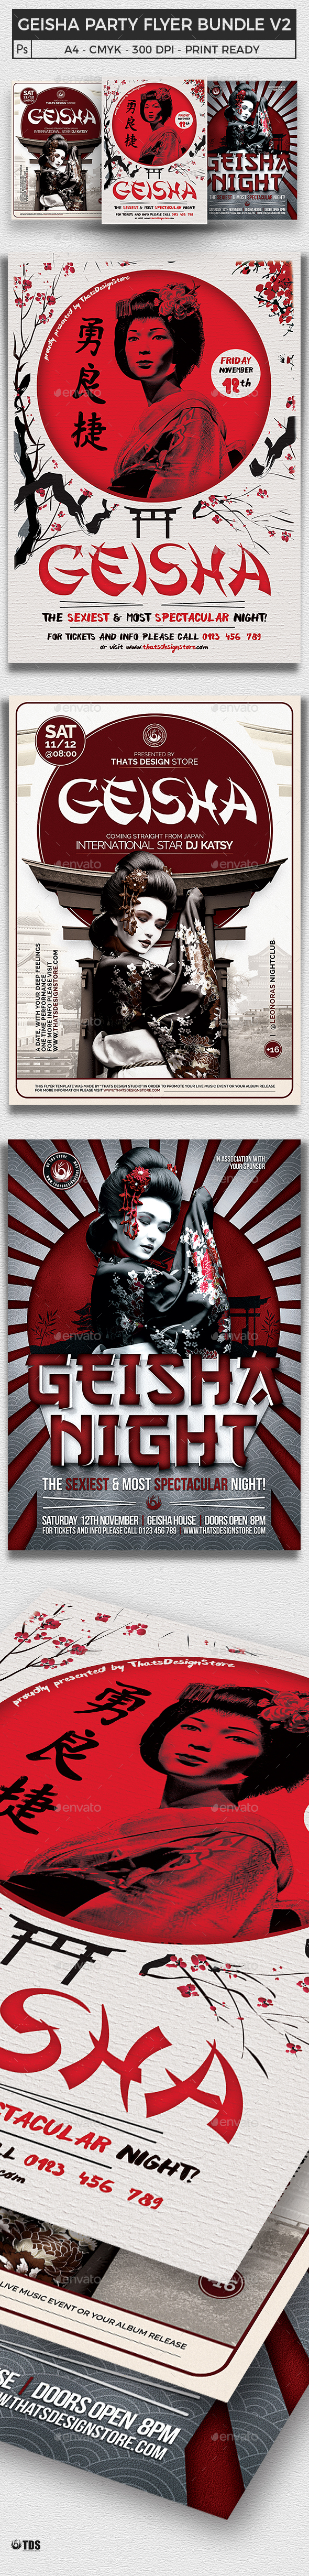 Geisha Party Flyer Bundle V2 - Clubs & Parties Events